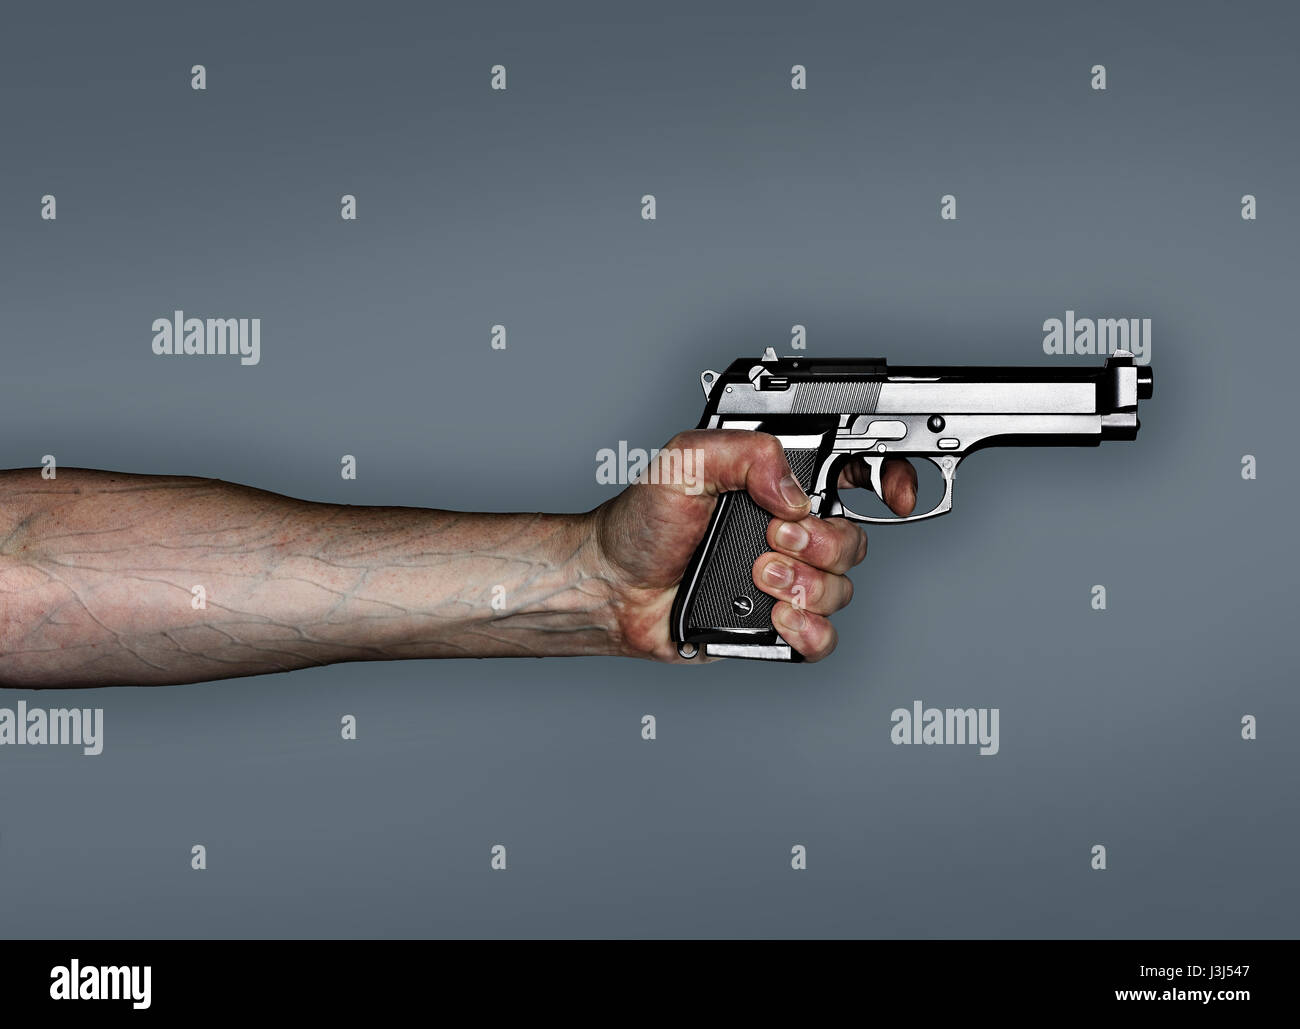 Hand holding revolver, tightly gripping the gun with veins bulging in arm. - Stock Image